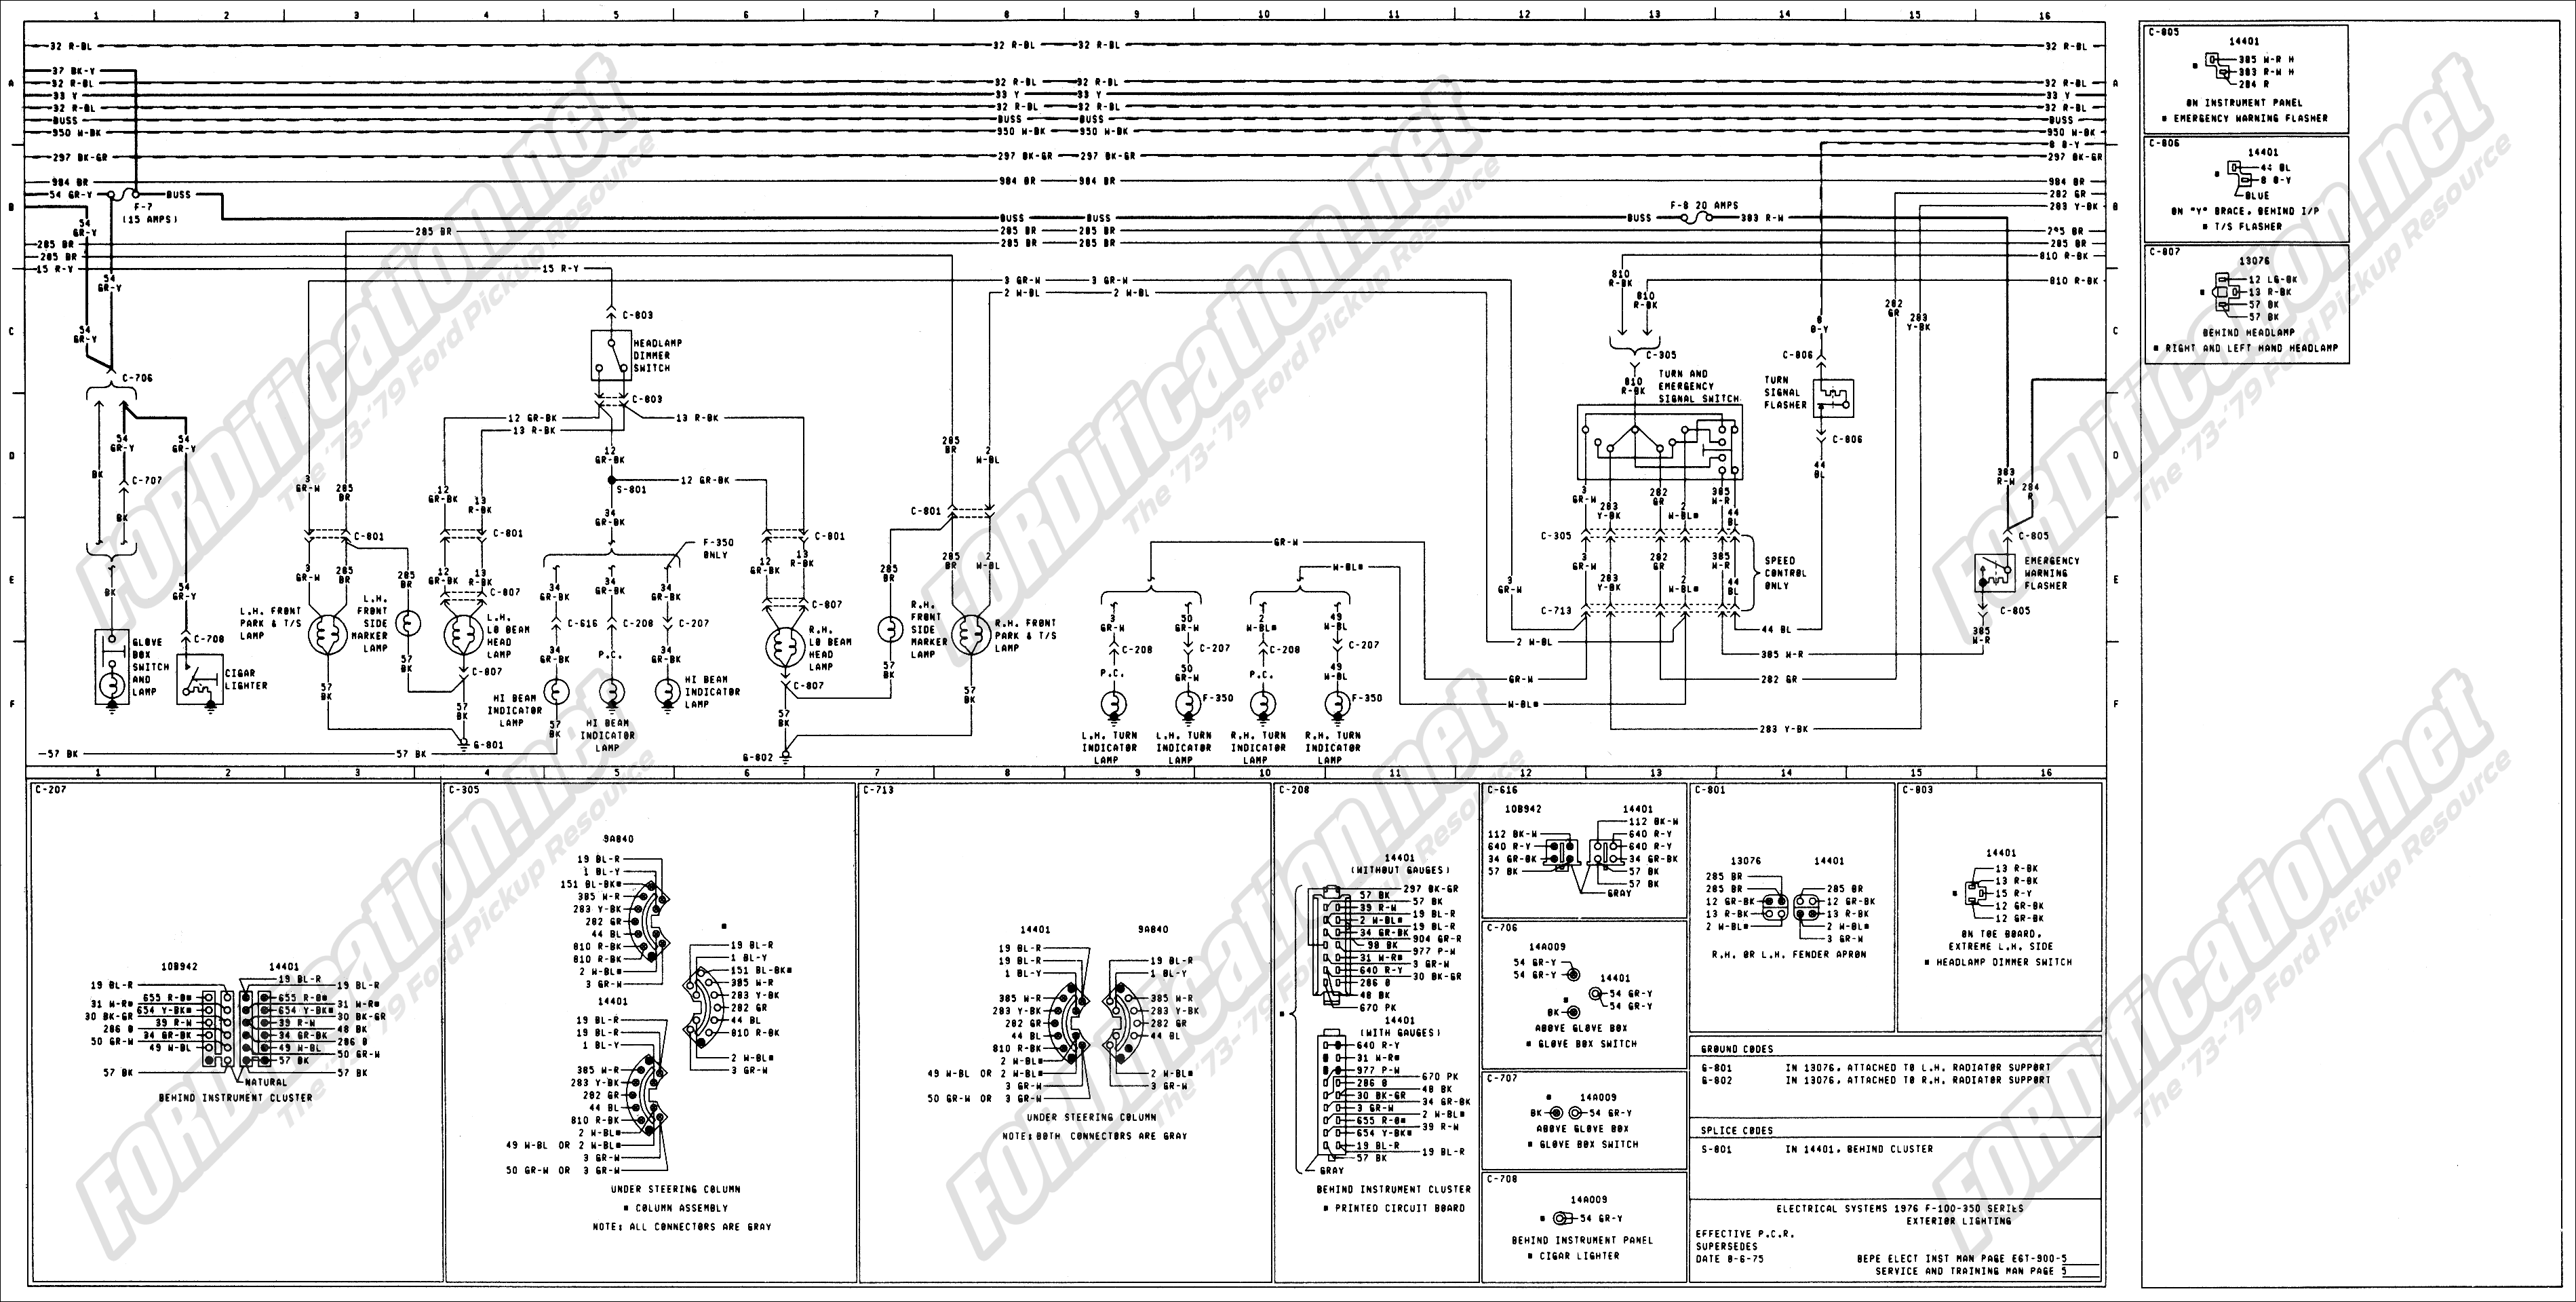 Icp Heat Pump Defrost Board Wiring Diagram For Model Phm342kooa A 73 78 Ford F100 Libraries 1973 1979 Truck Diagrams U0026 Schematics Fordification Netwiring